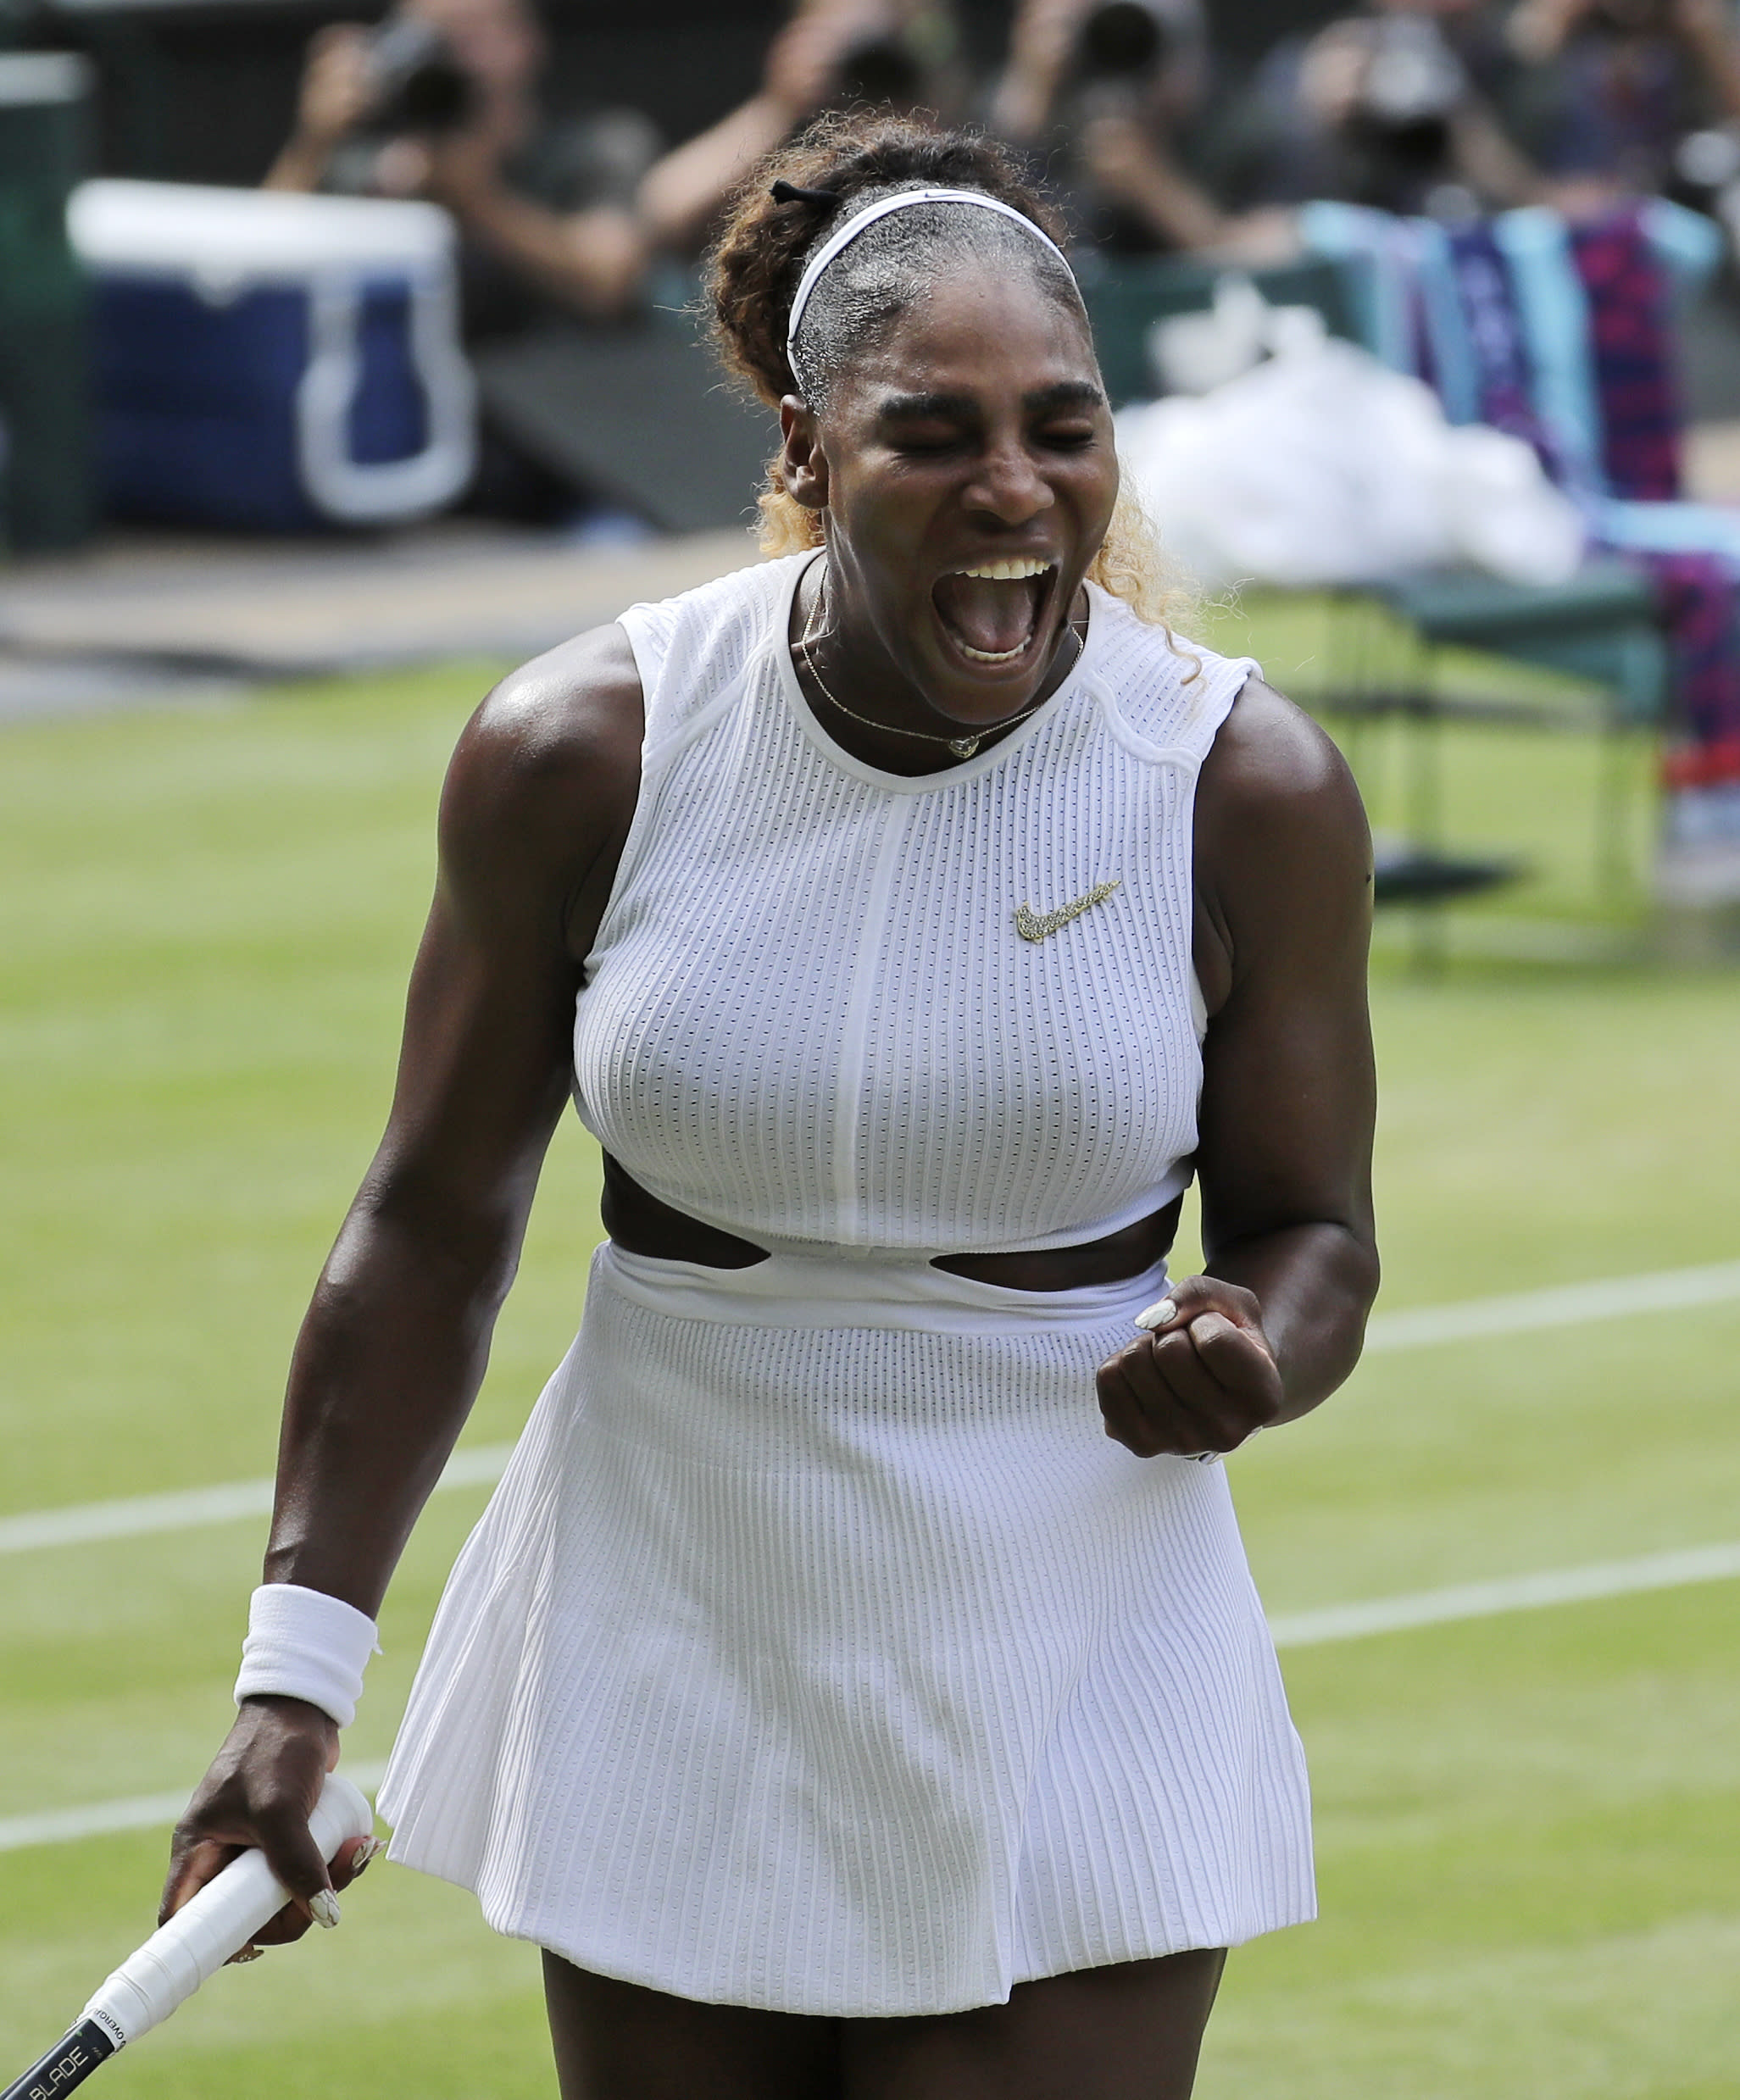 Halep beats Serena Williams in Wimbledon final